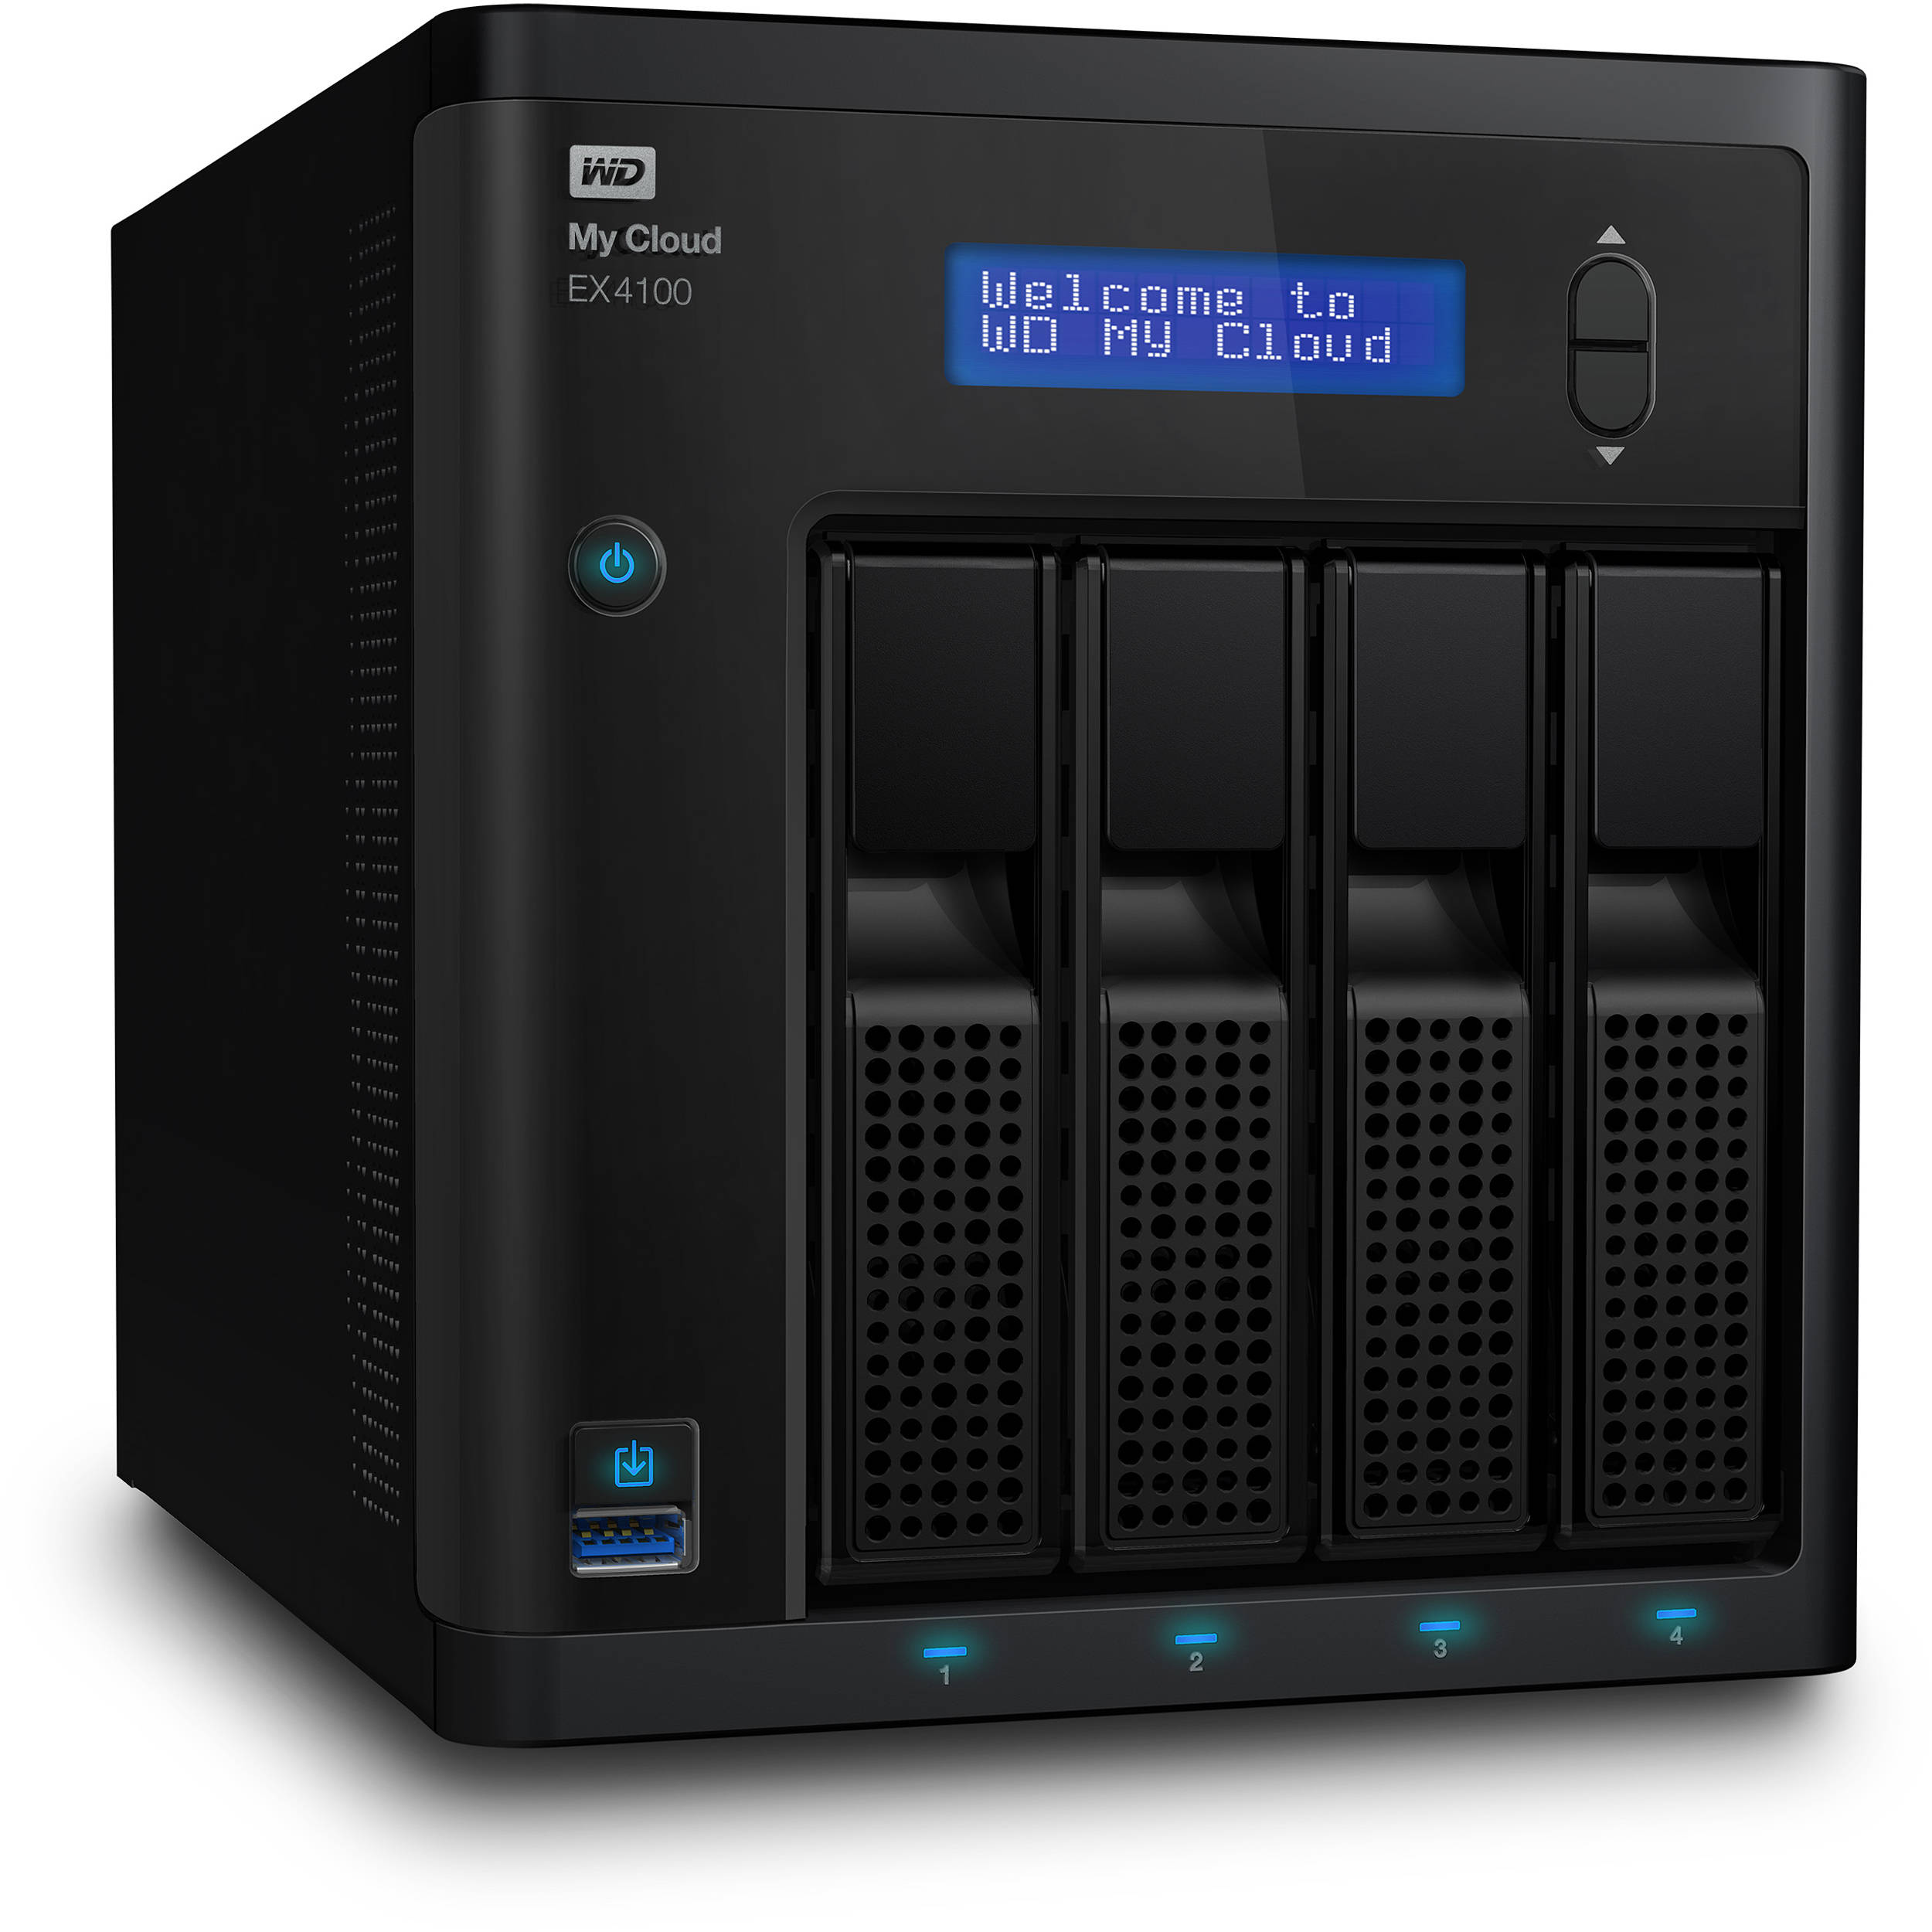 Wd my cloud expert series ex4100 16tb 4 bay wdbwze0160kbk nesn for Storage bay